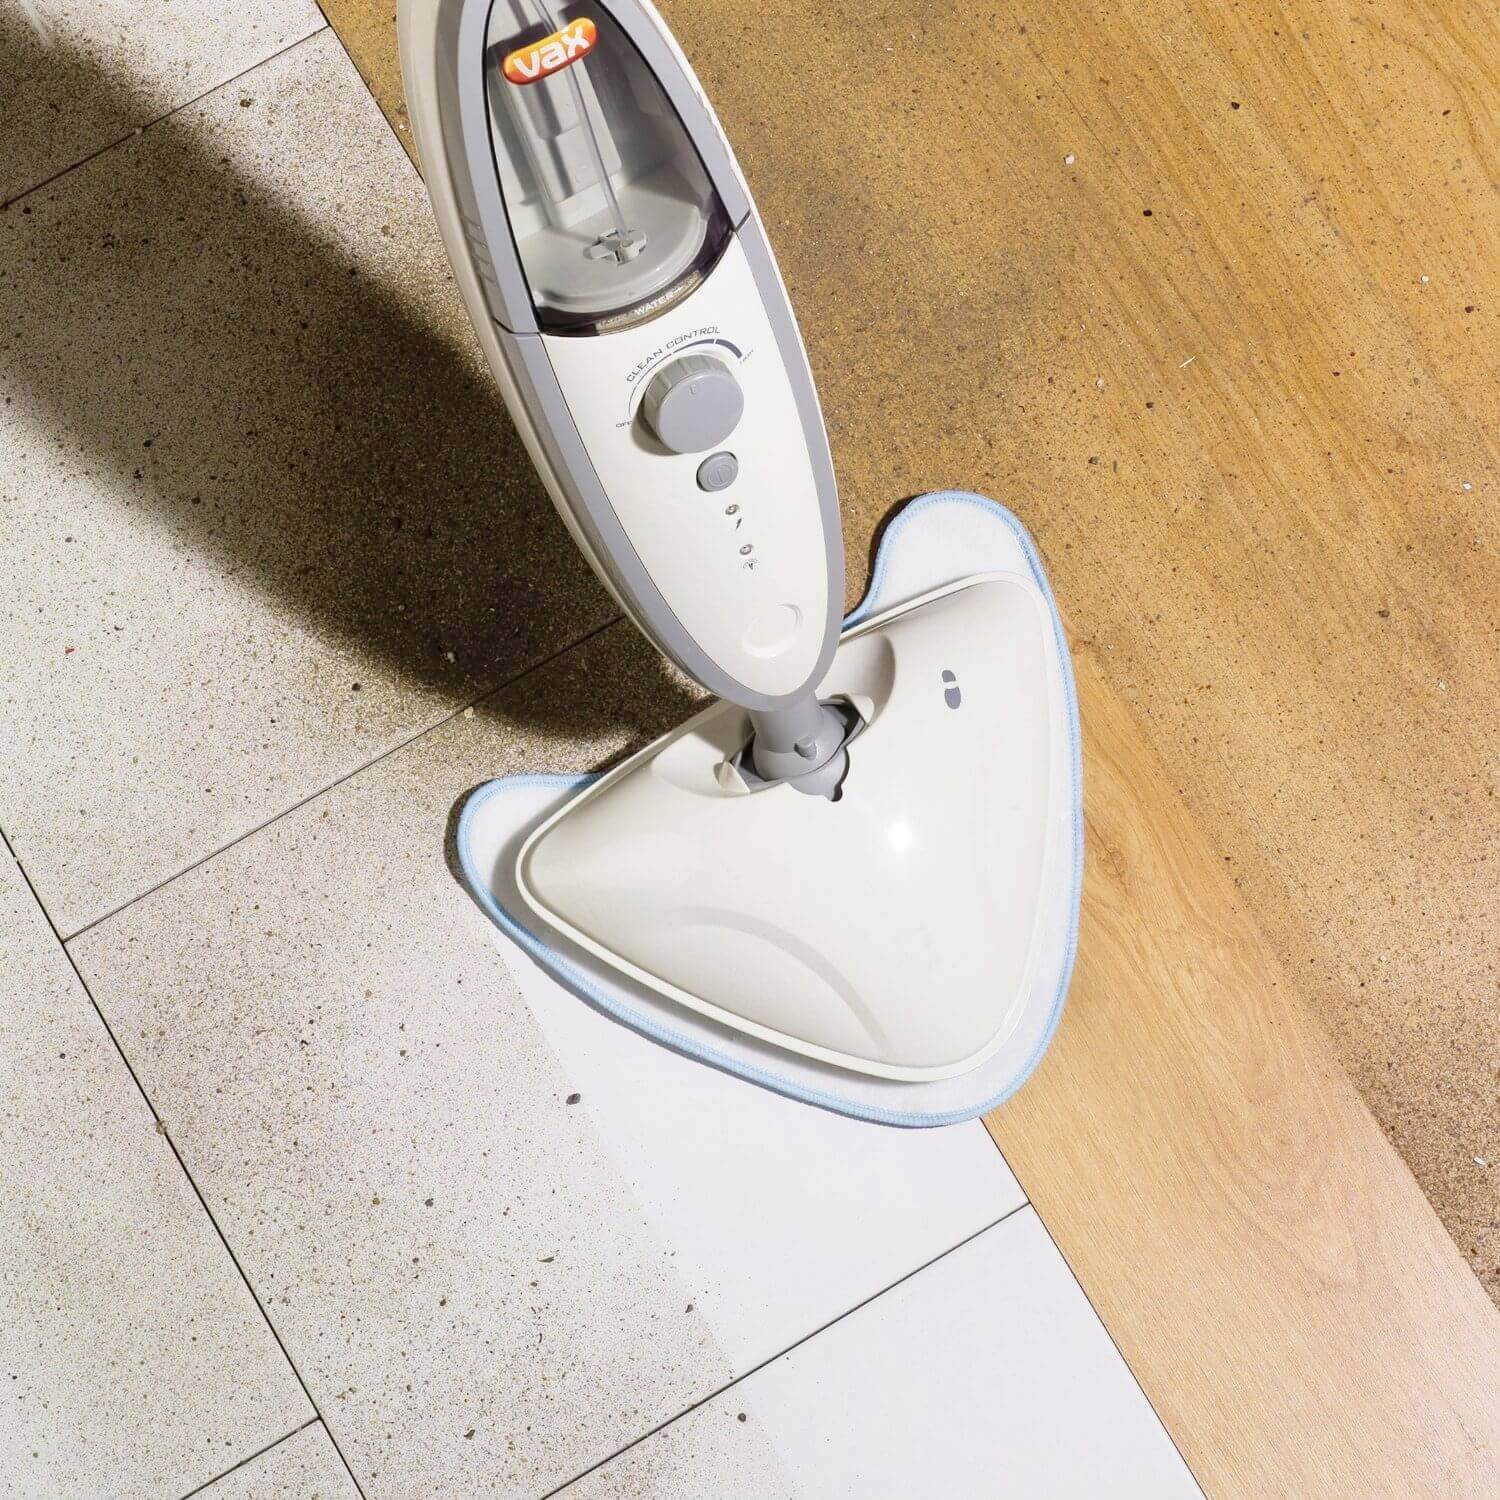 Best steam mop hardwood floors